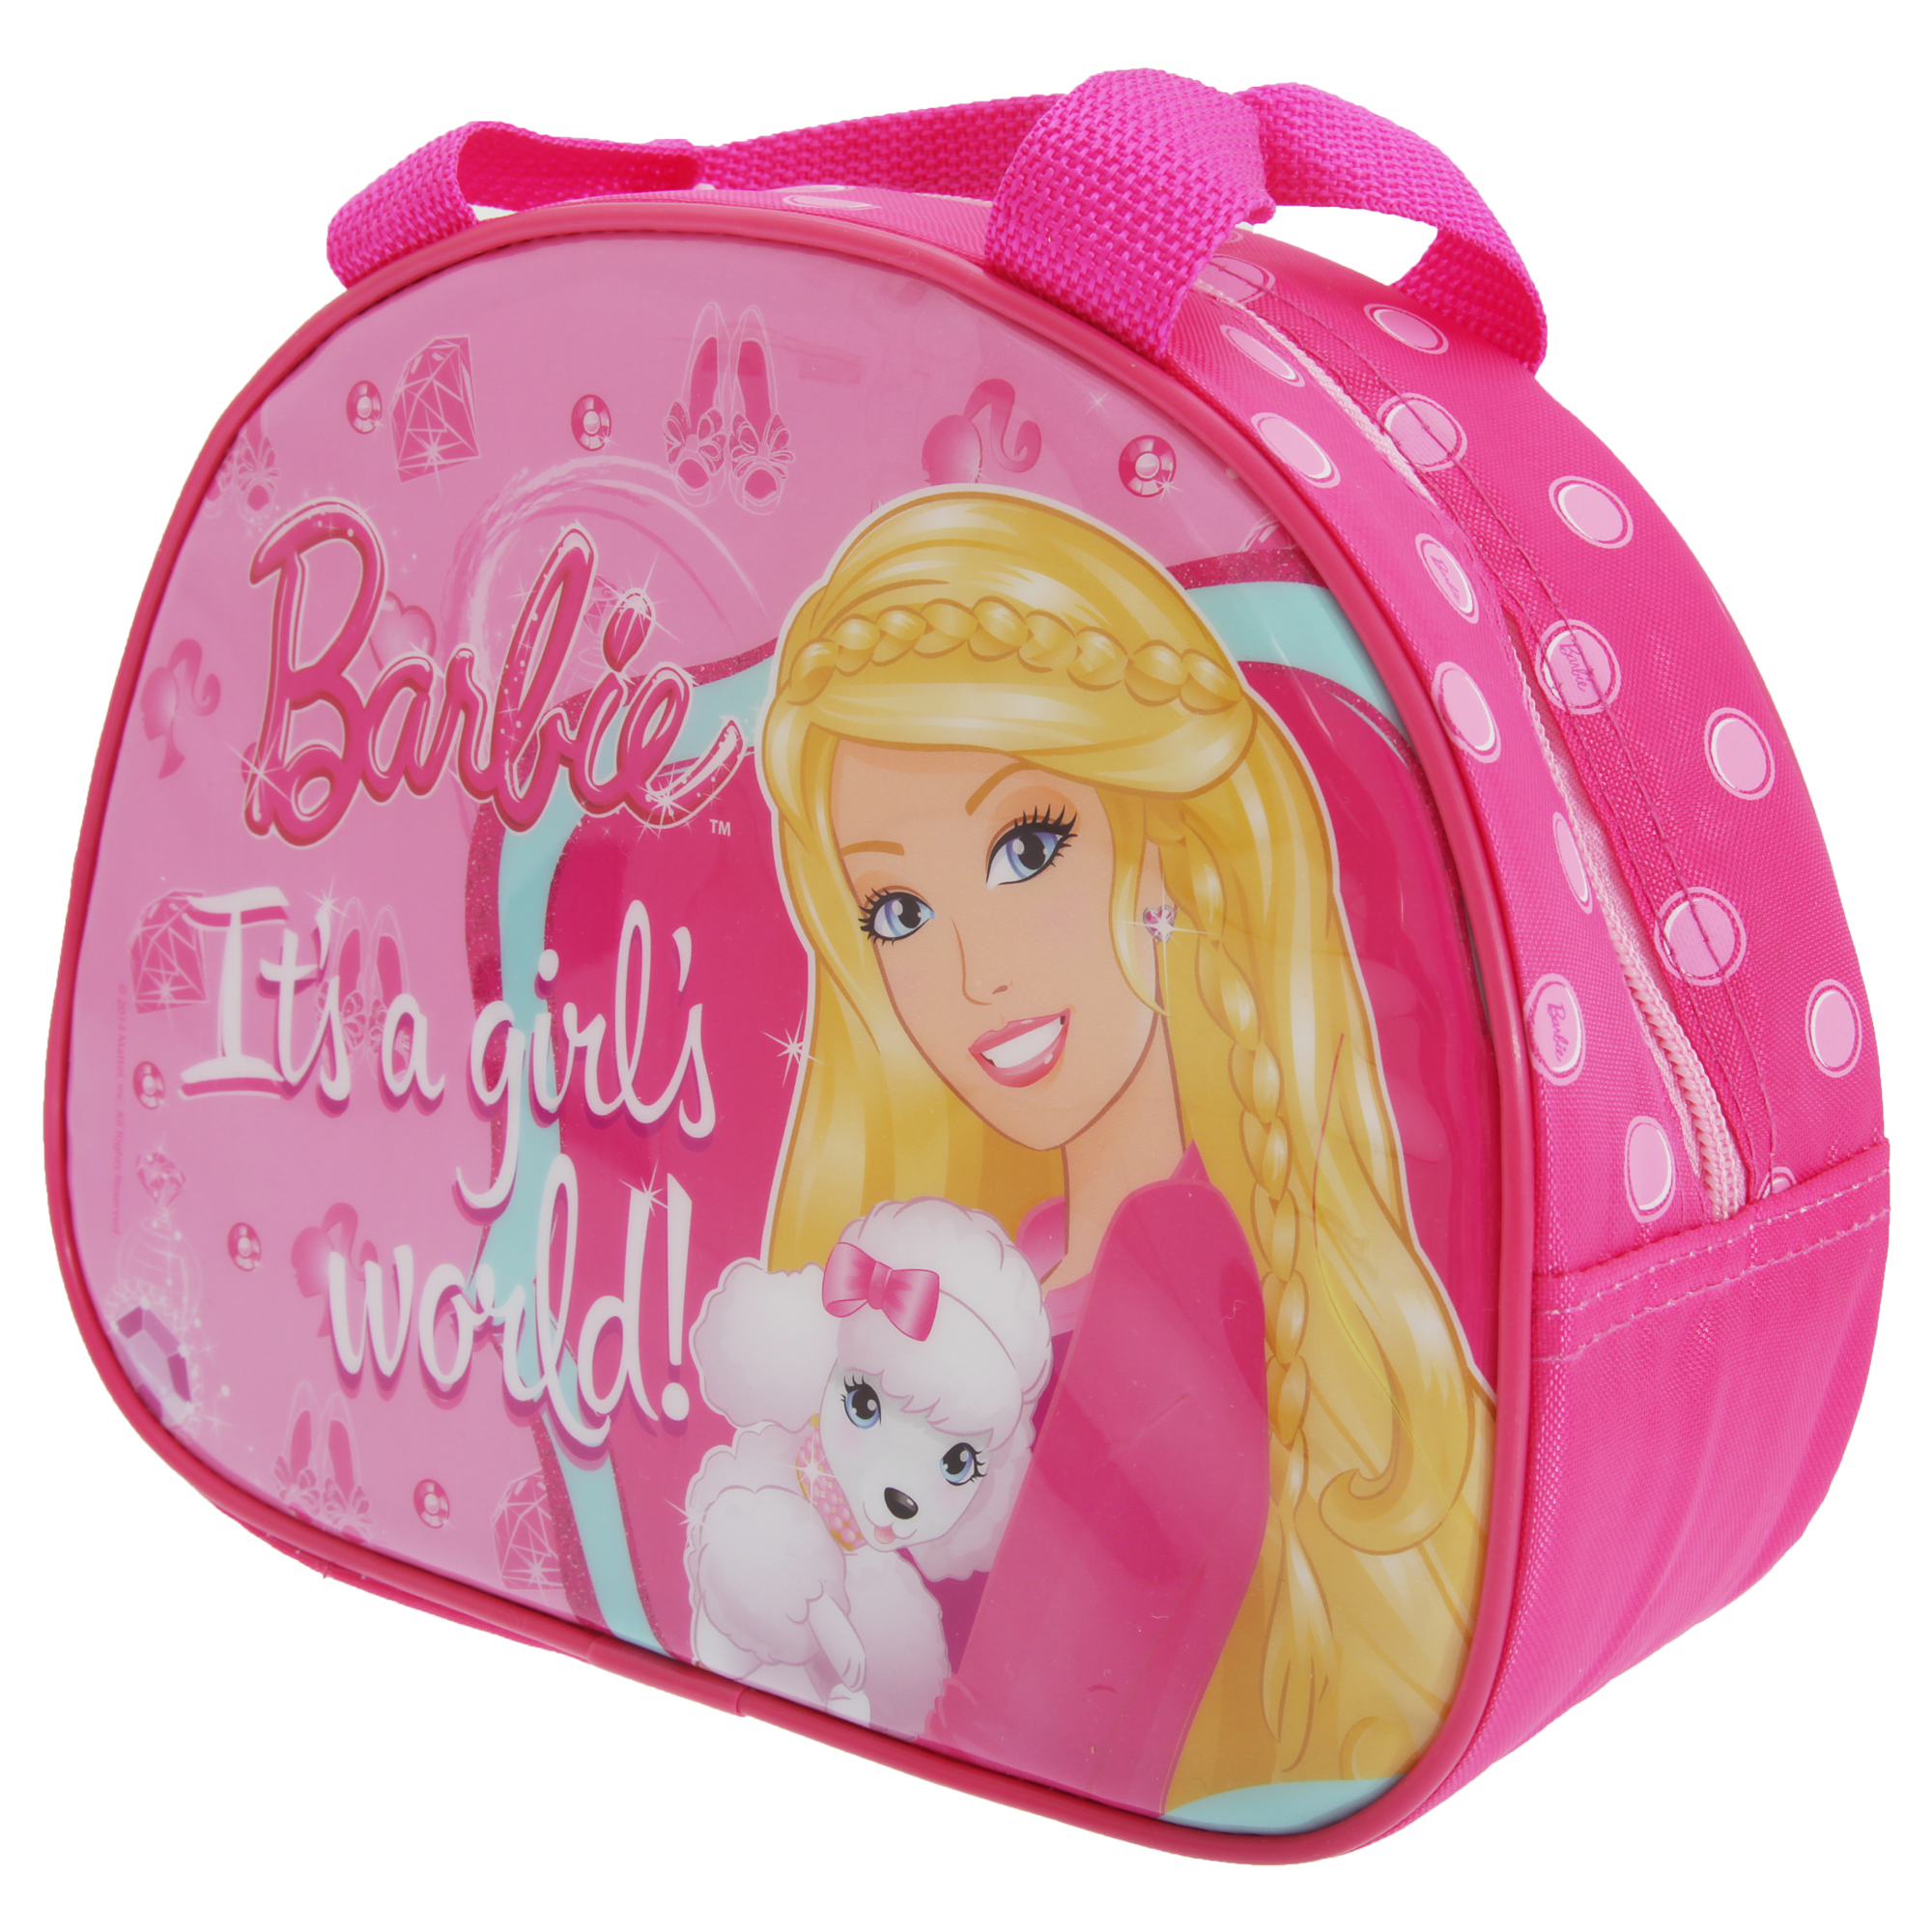 Barbie Childrens Girls Official Insulated Purse Shaped Lunch Bag (One Size) (Pink)